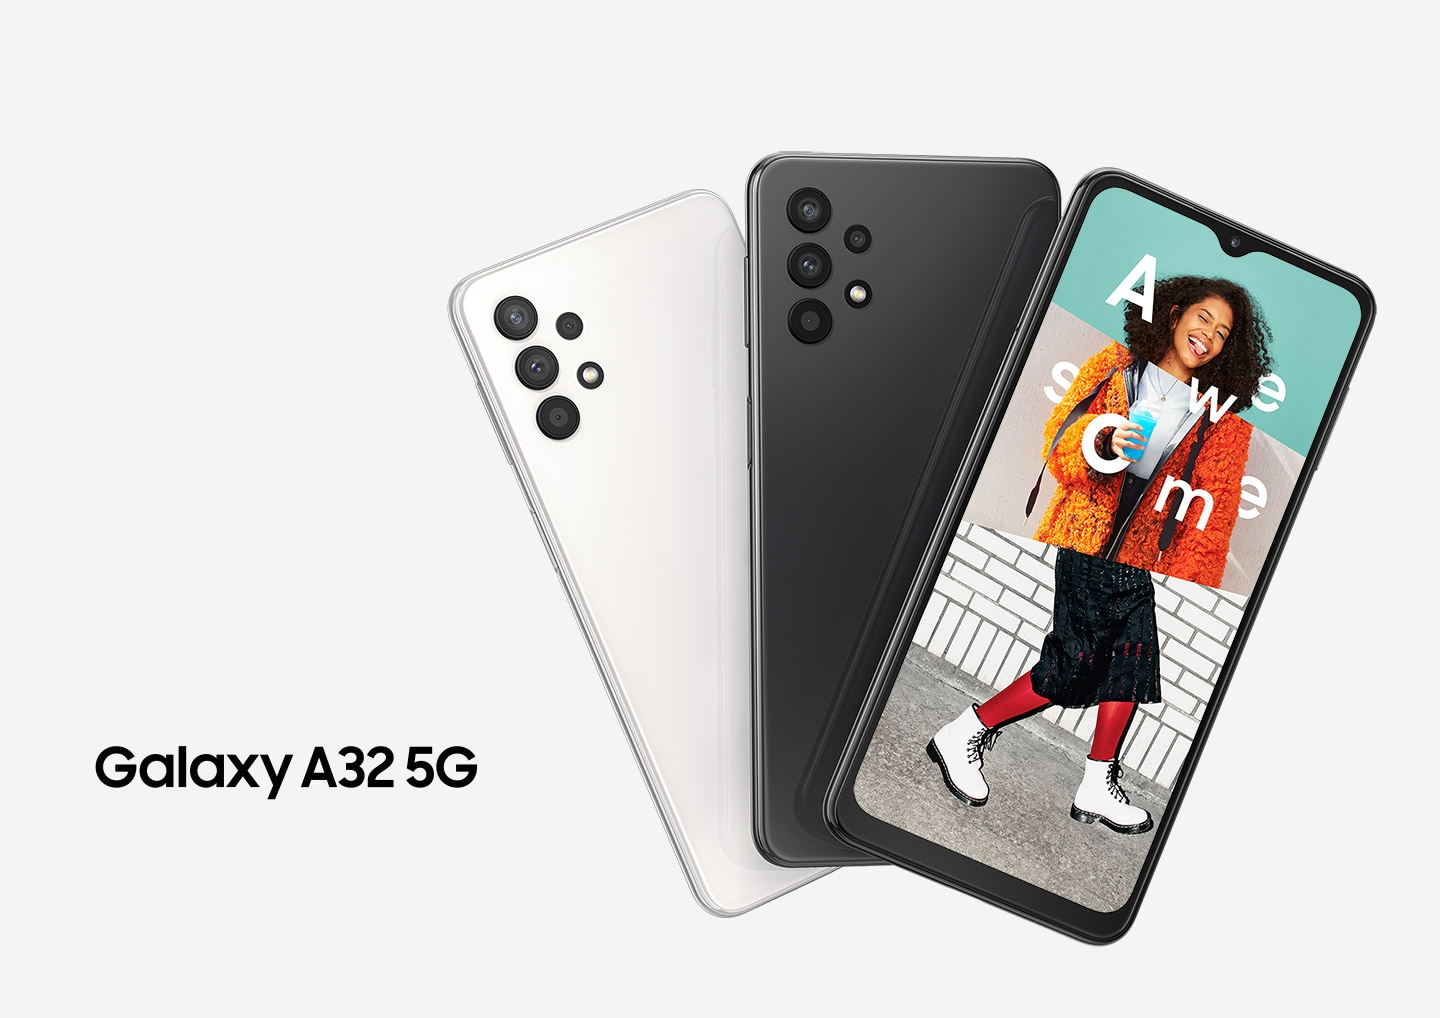 Galaxy A32 5G Key visual comes out in three devices with its official logo on the side. On the screen, an excited young woman is starring at the camera, surrounding the text of `Awesome` on herself.